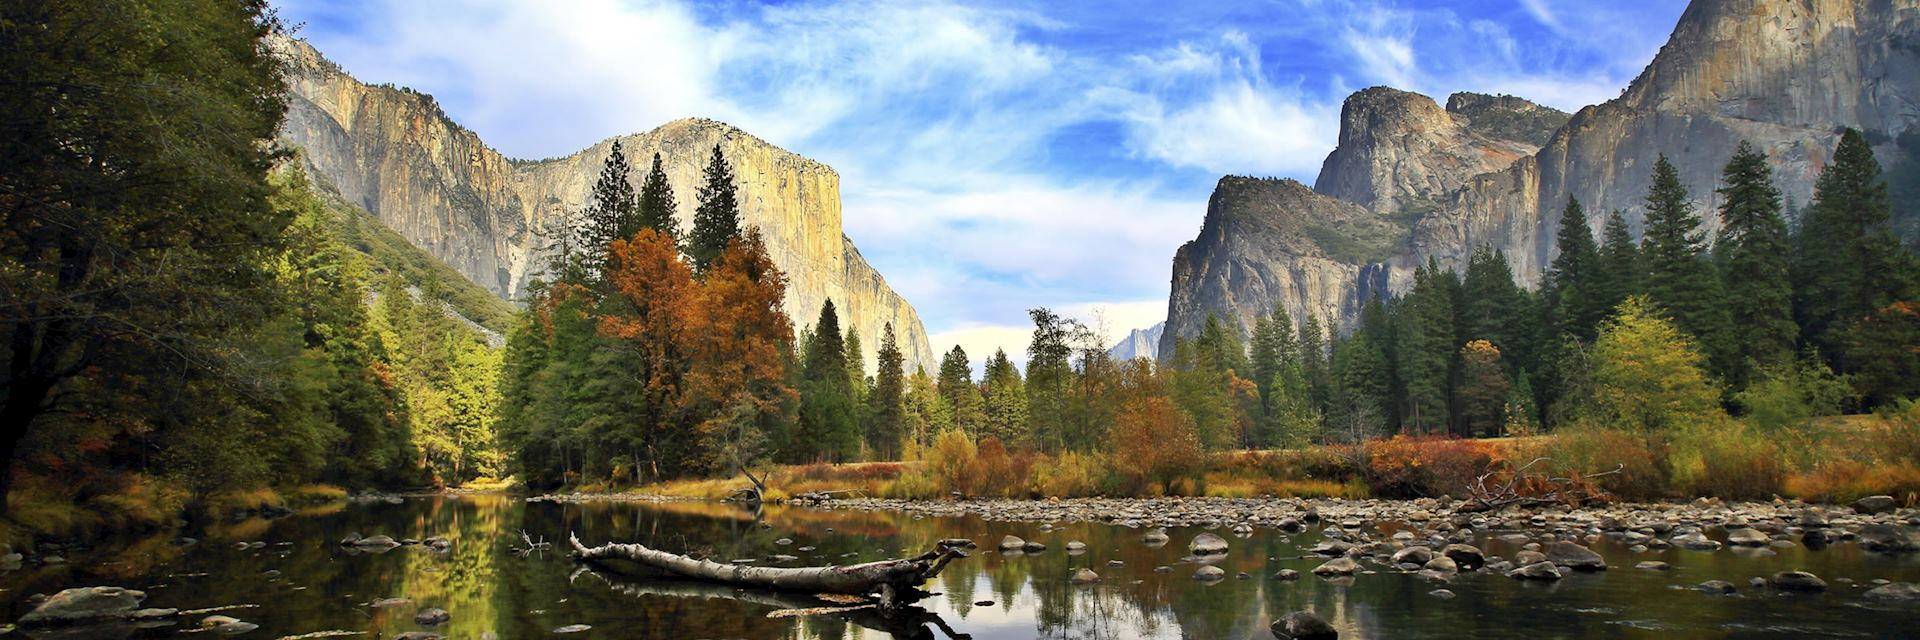 El Capitan and the Merced River in Yosemite National Park